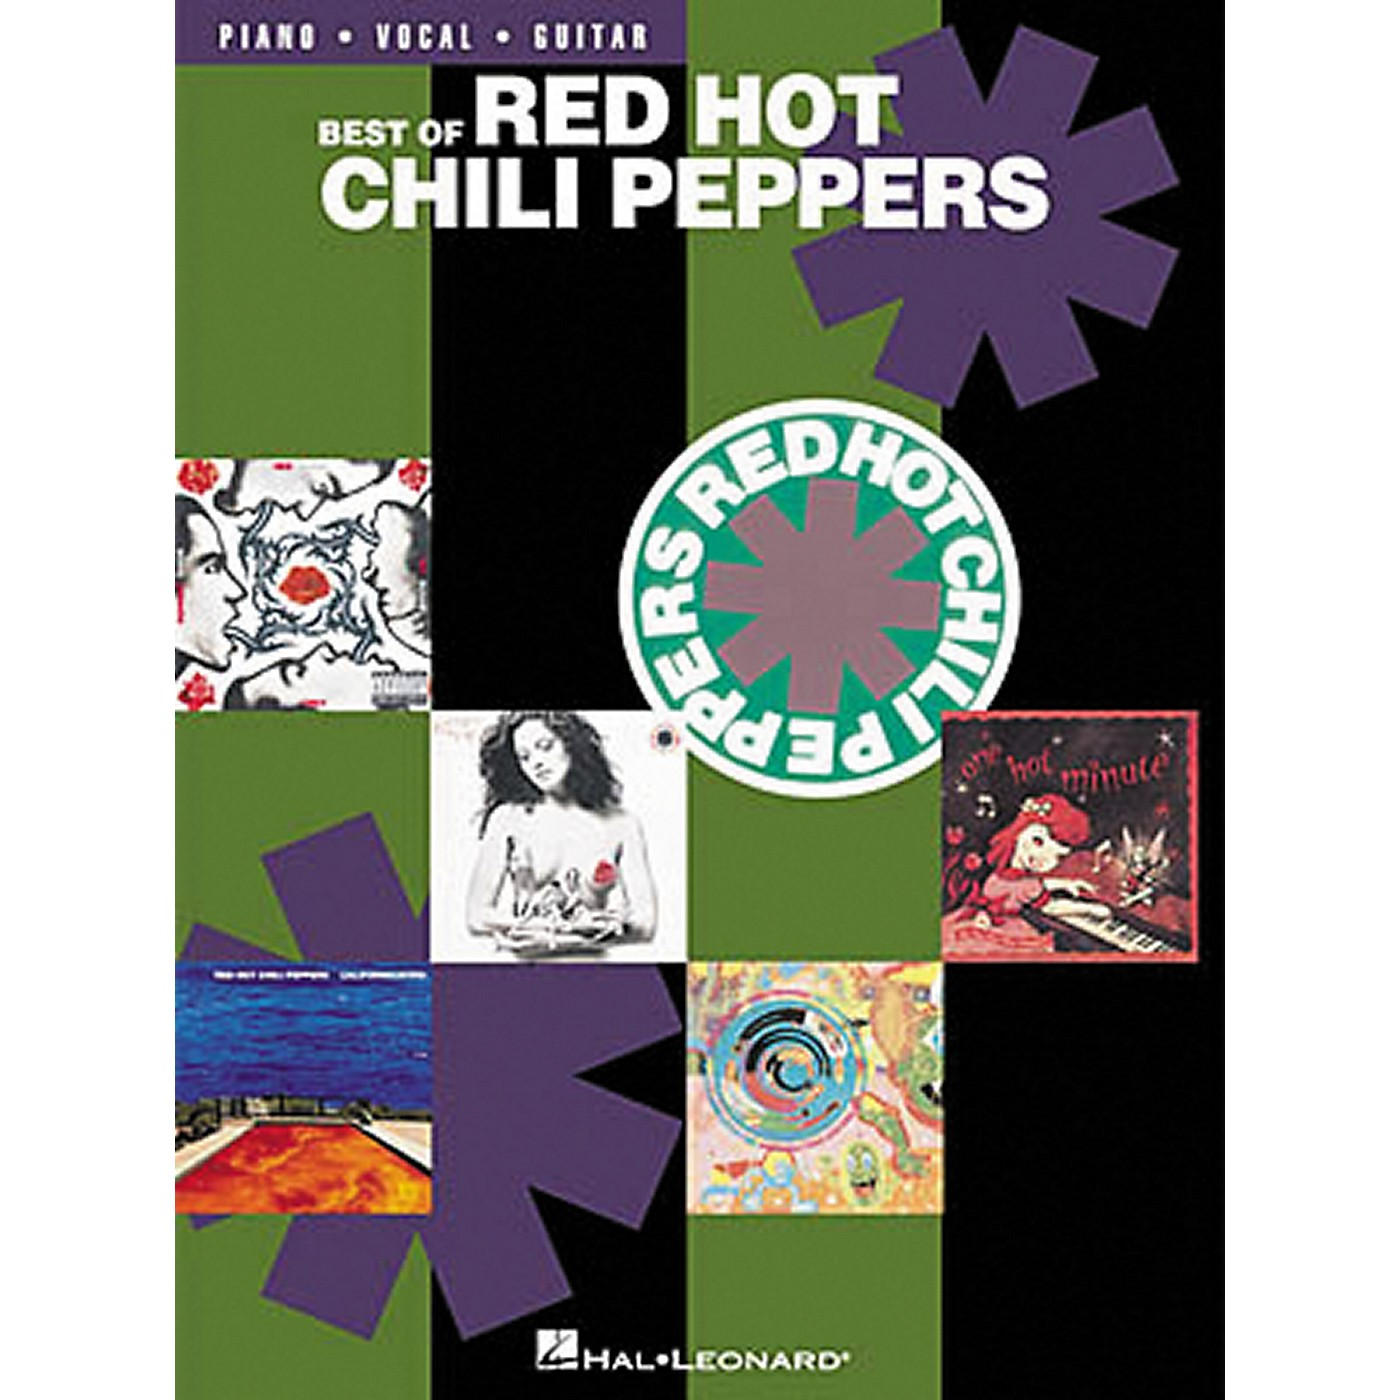 Hal Leonard Best of Red Hot Chili Peppers Piano, Vocal, Guitar Songbook thumbnail